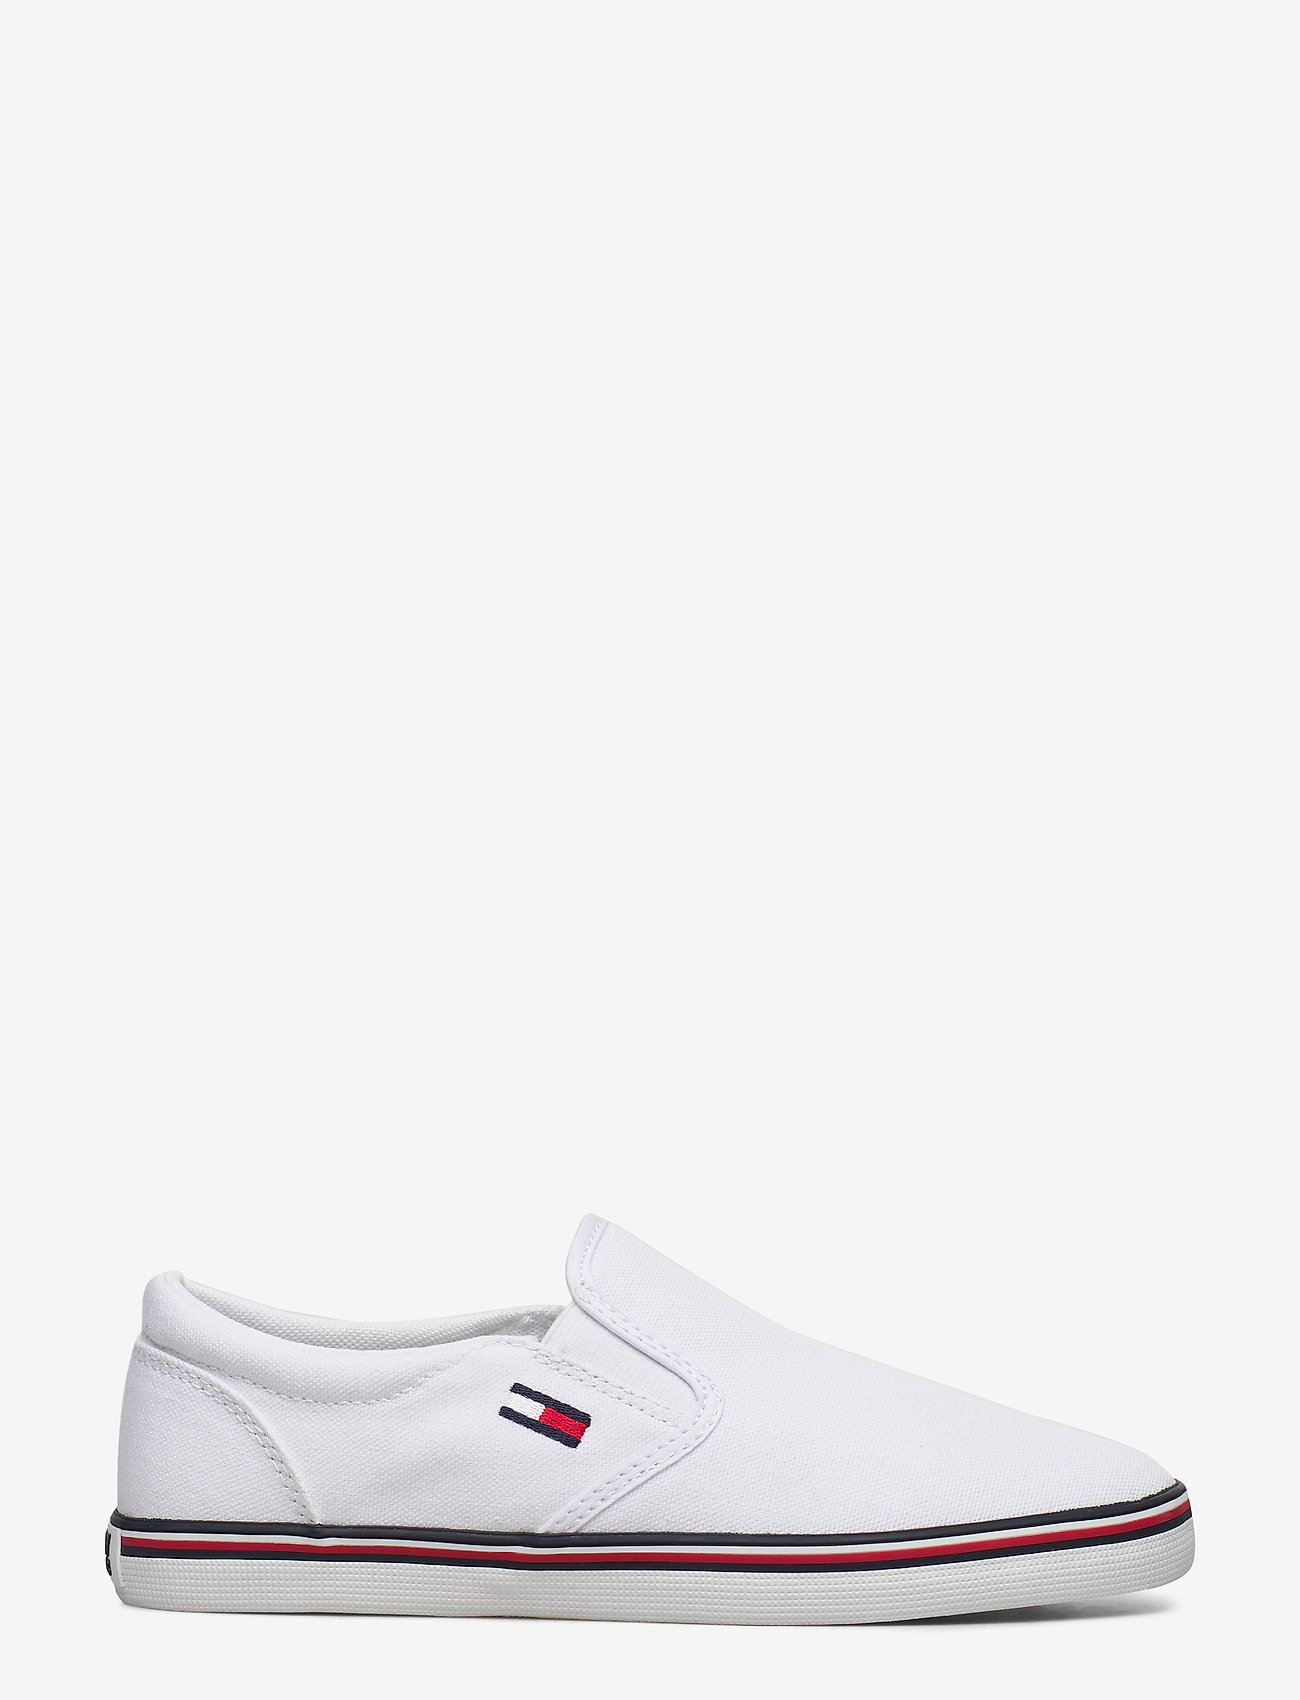 Tommy Hilfiger - ESSENTIAL SLIP ON SNEAKER - slip-on sneakers - white - 1